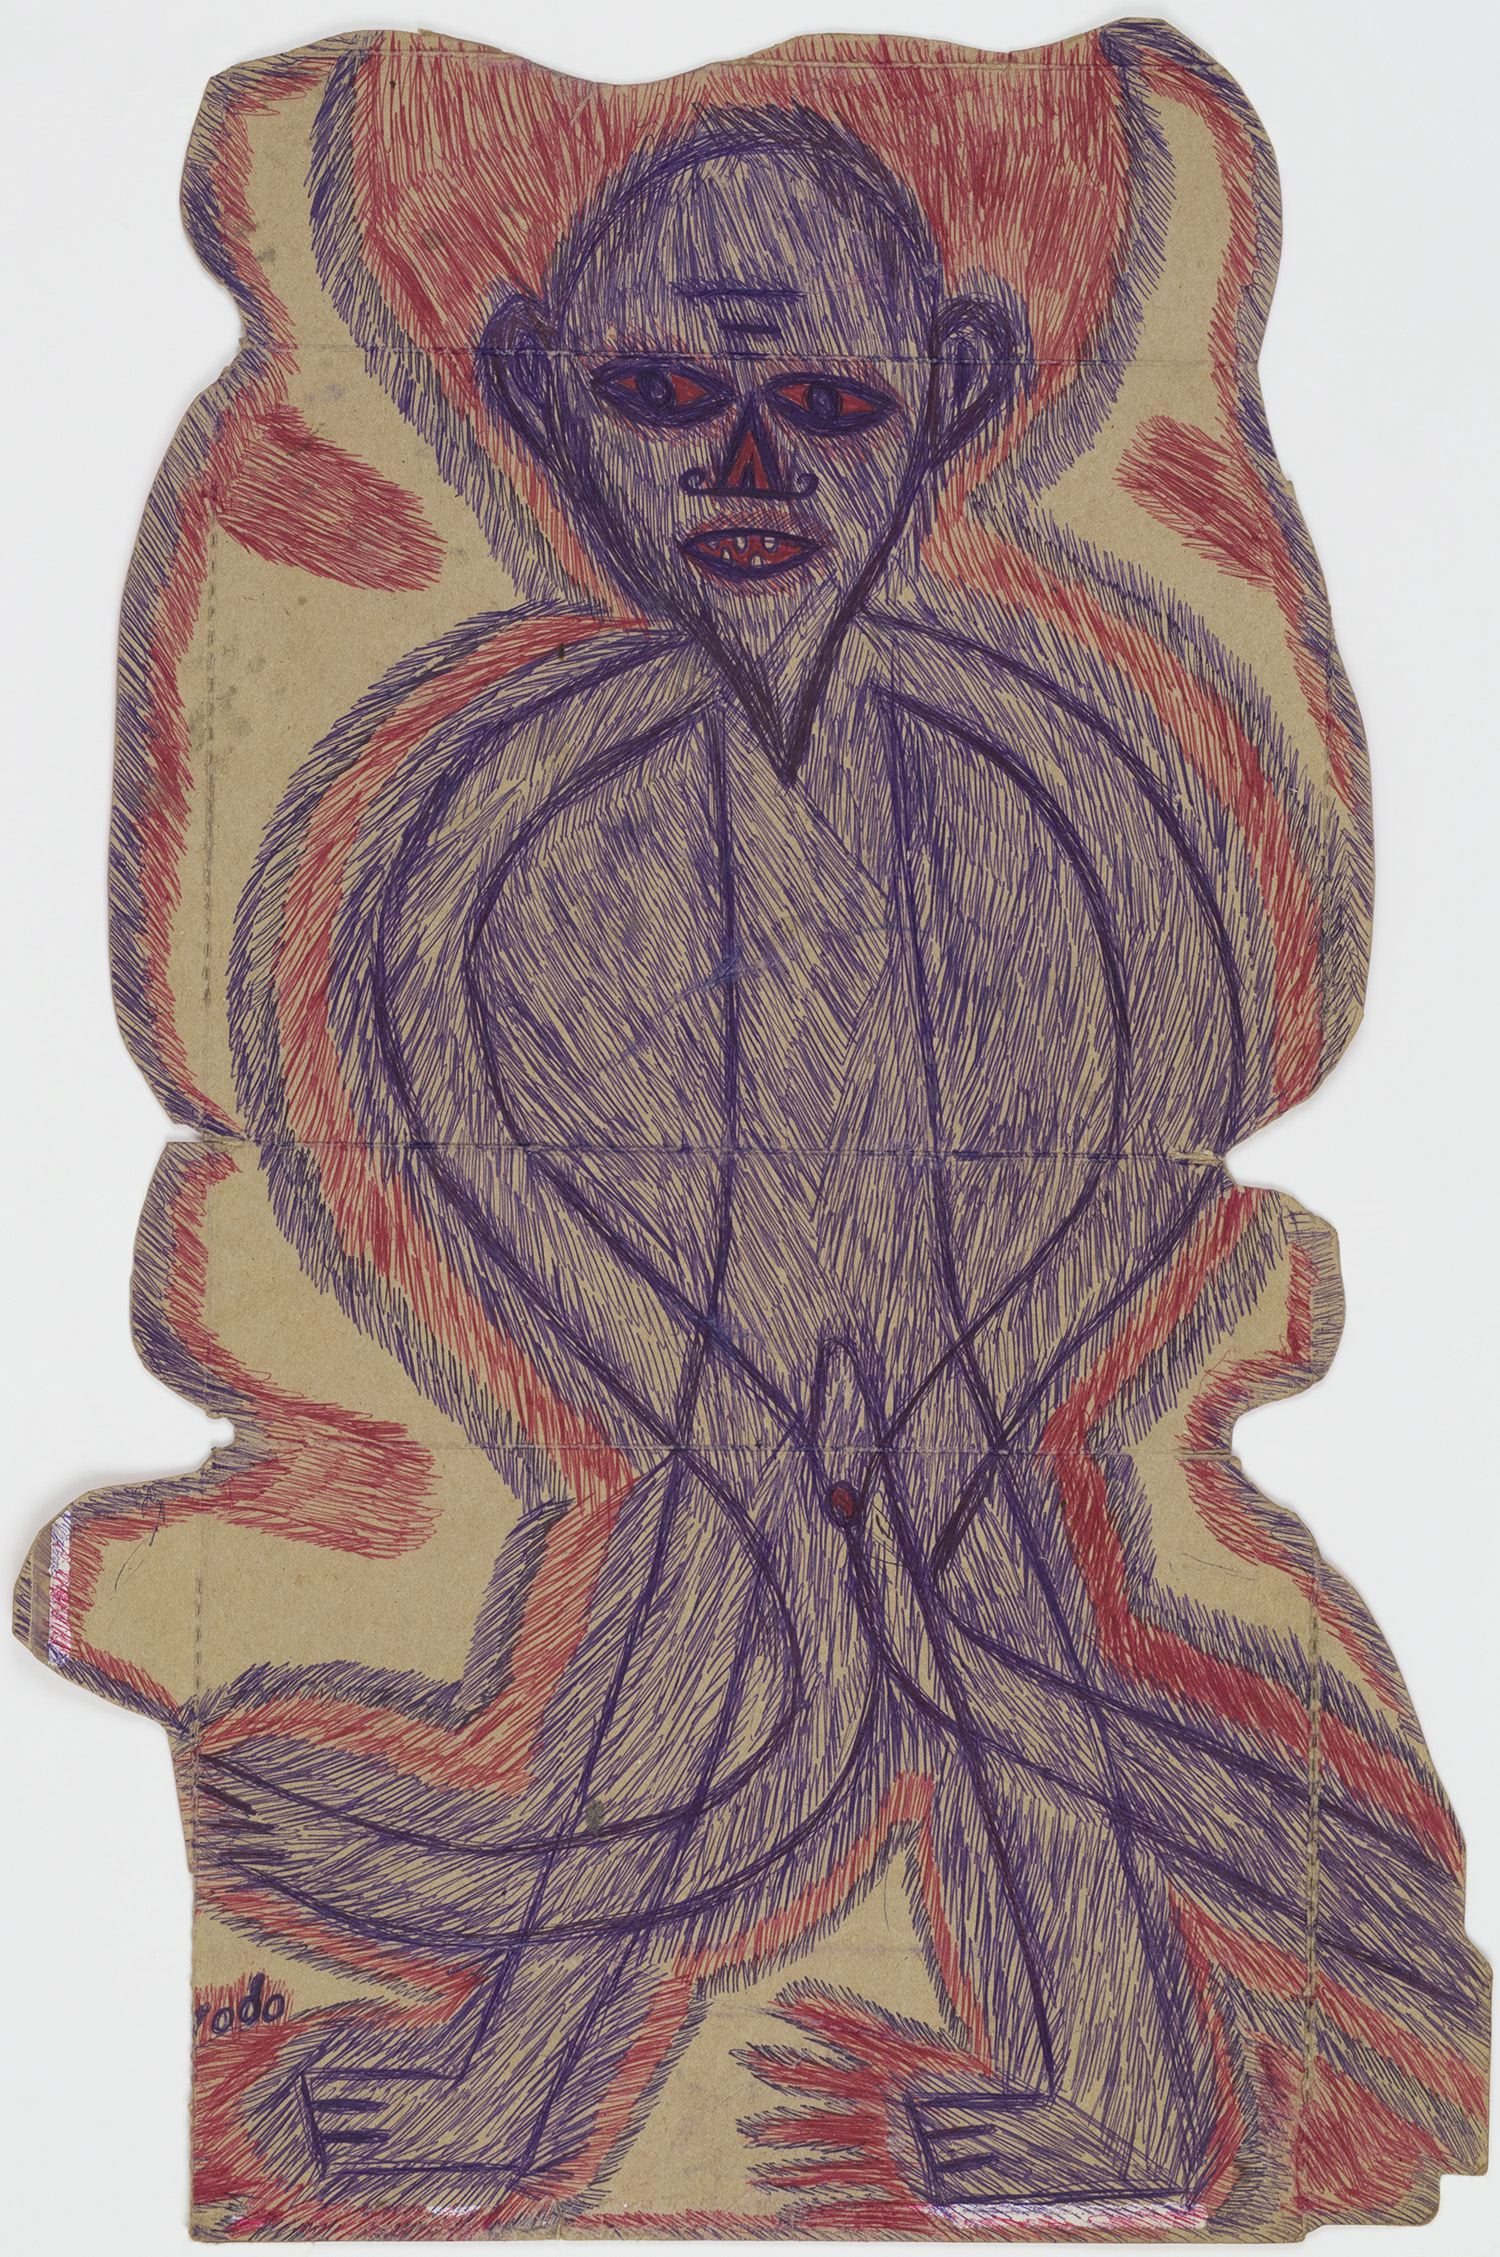 Guyodo (Frantz Jacques)    Untitled  , 2014 Ballpoint pen on recycled corn-flakes box 23.15 x 15.31 inches 58.8 x 38.9 cm Gyd 4